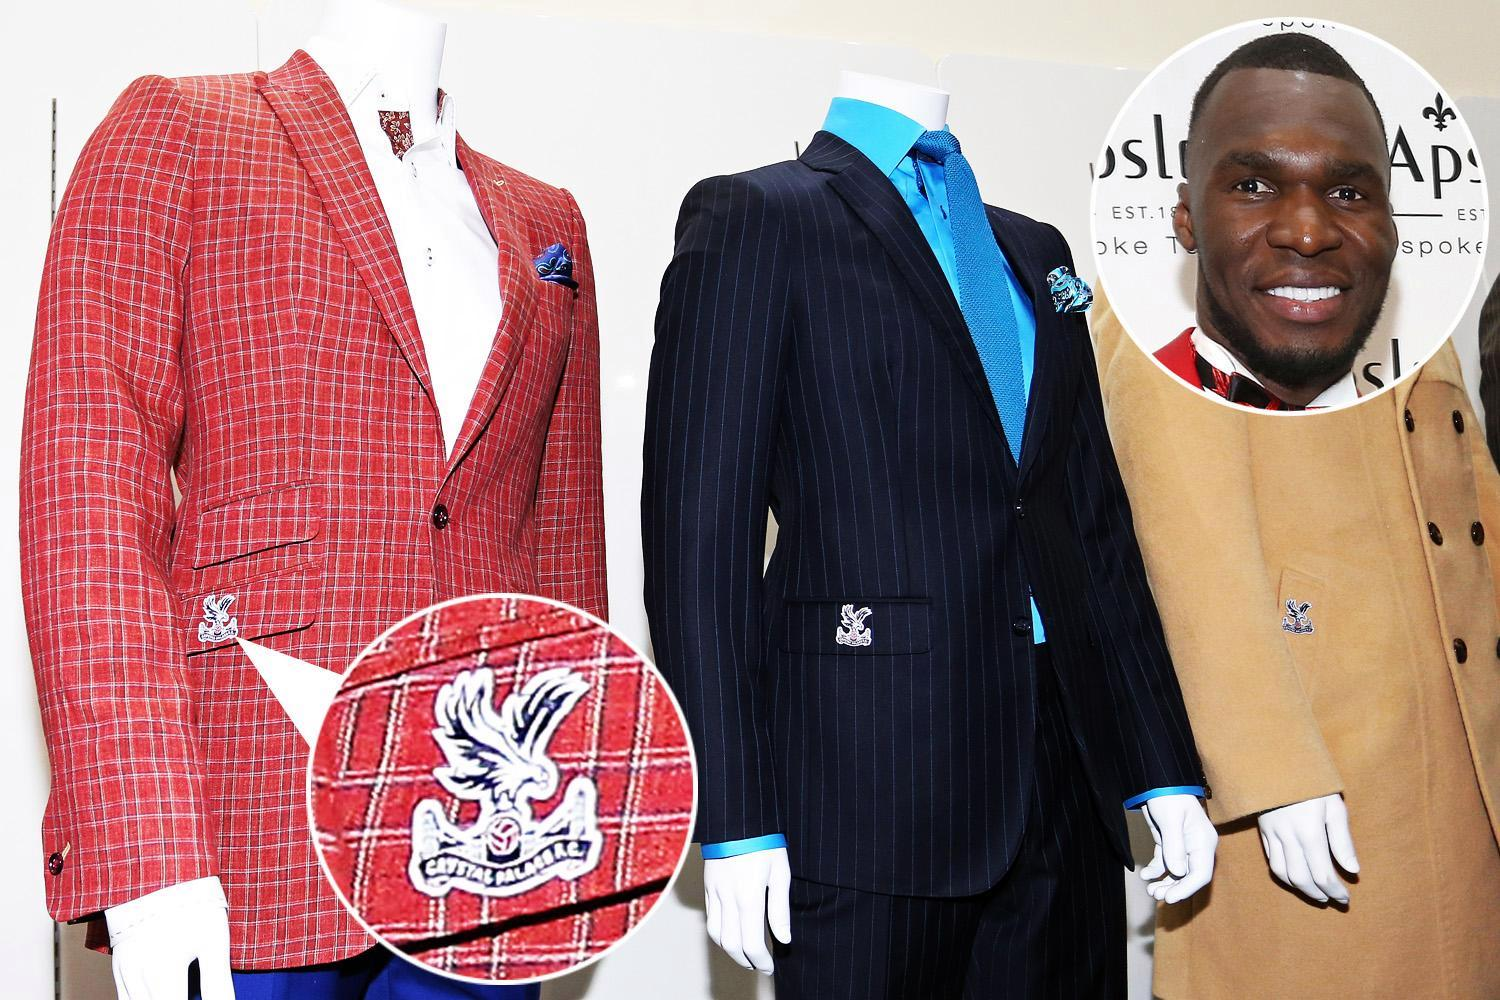 Christian Benteke insists Crystal Palace will beat drop as he launches bespoke suit collection